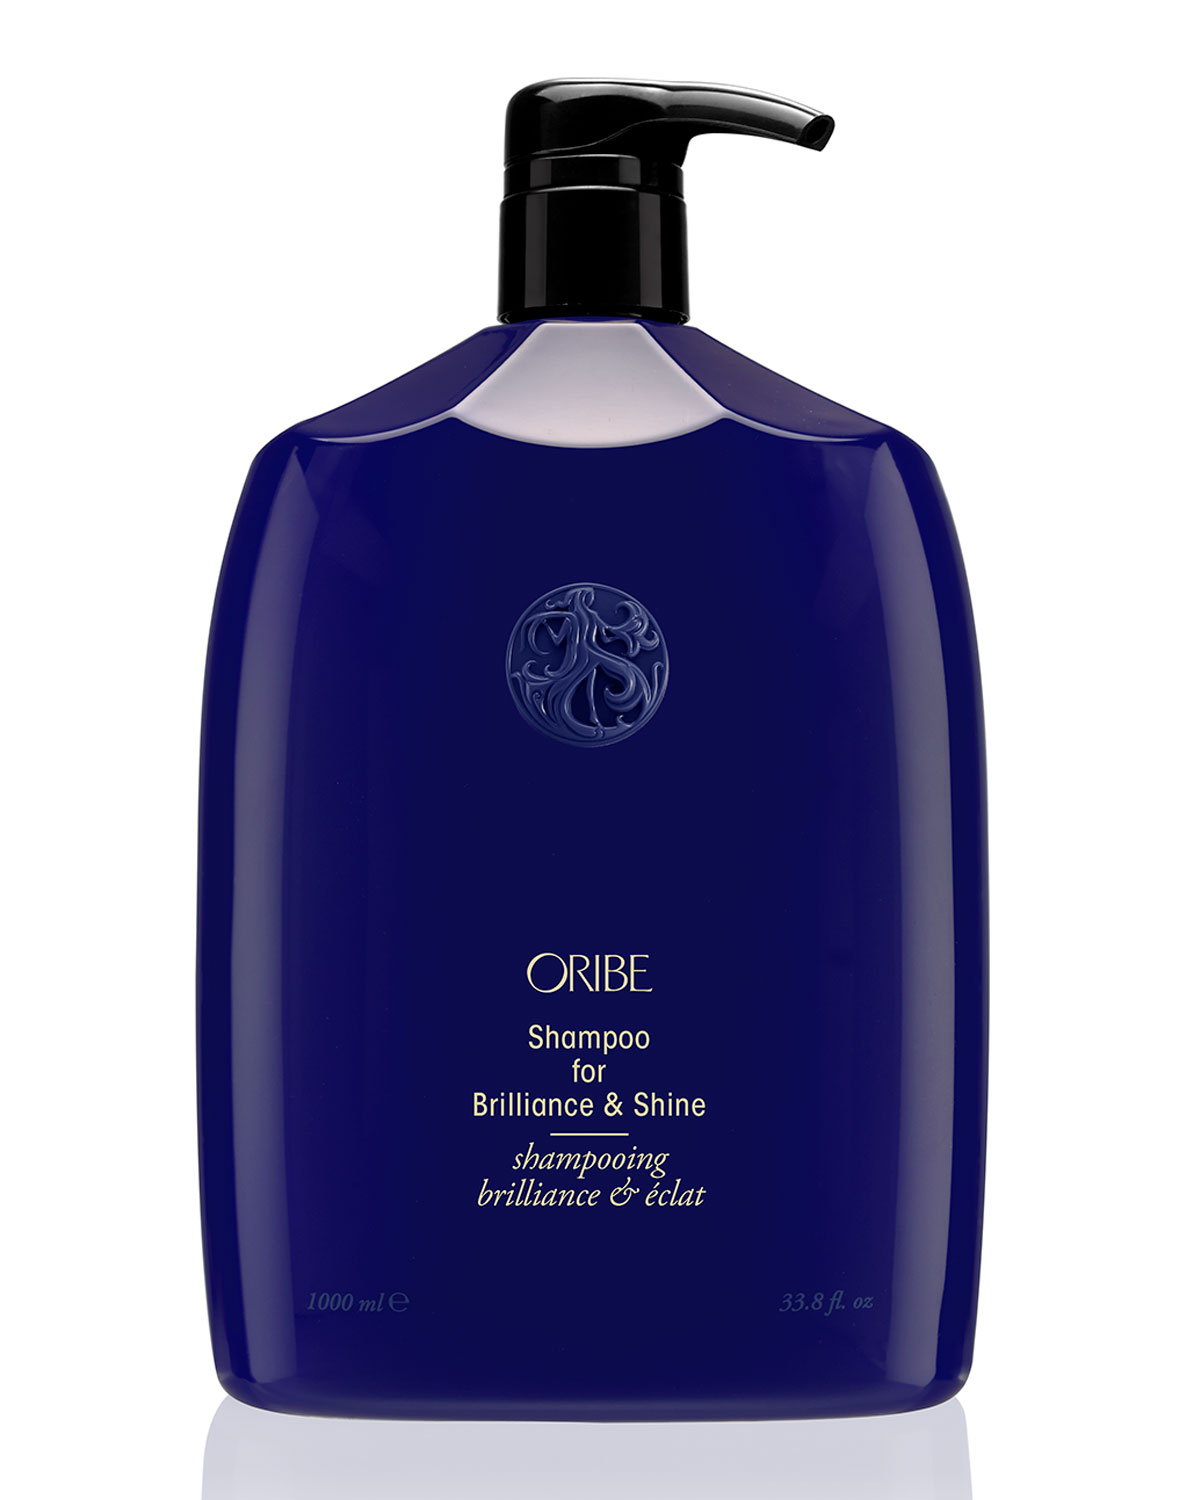 Shampoo for Brilliance & Shine, 33 oz./ 1 L